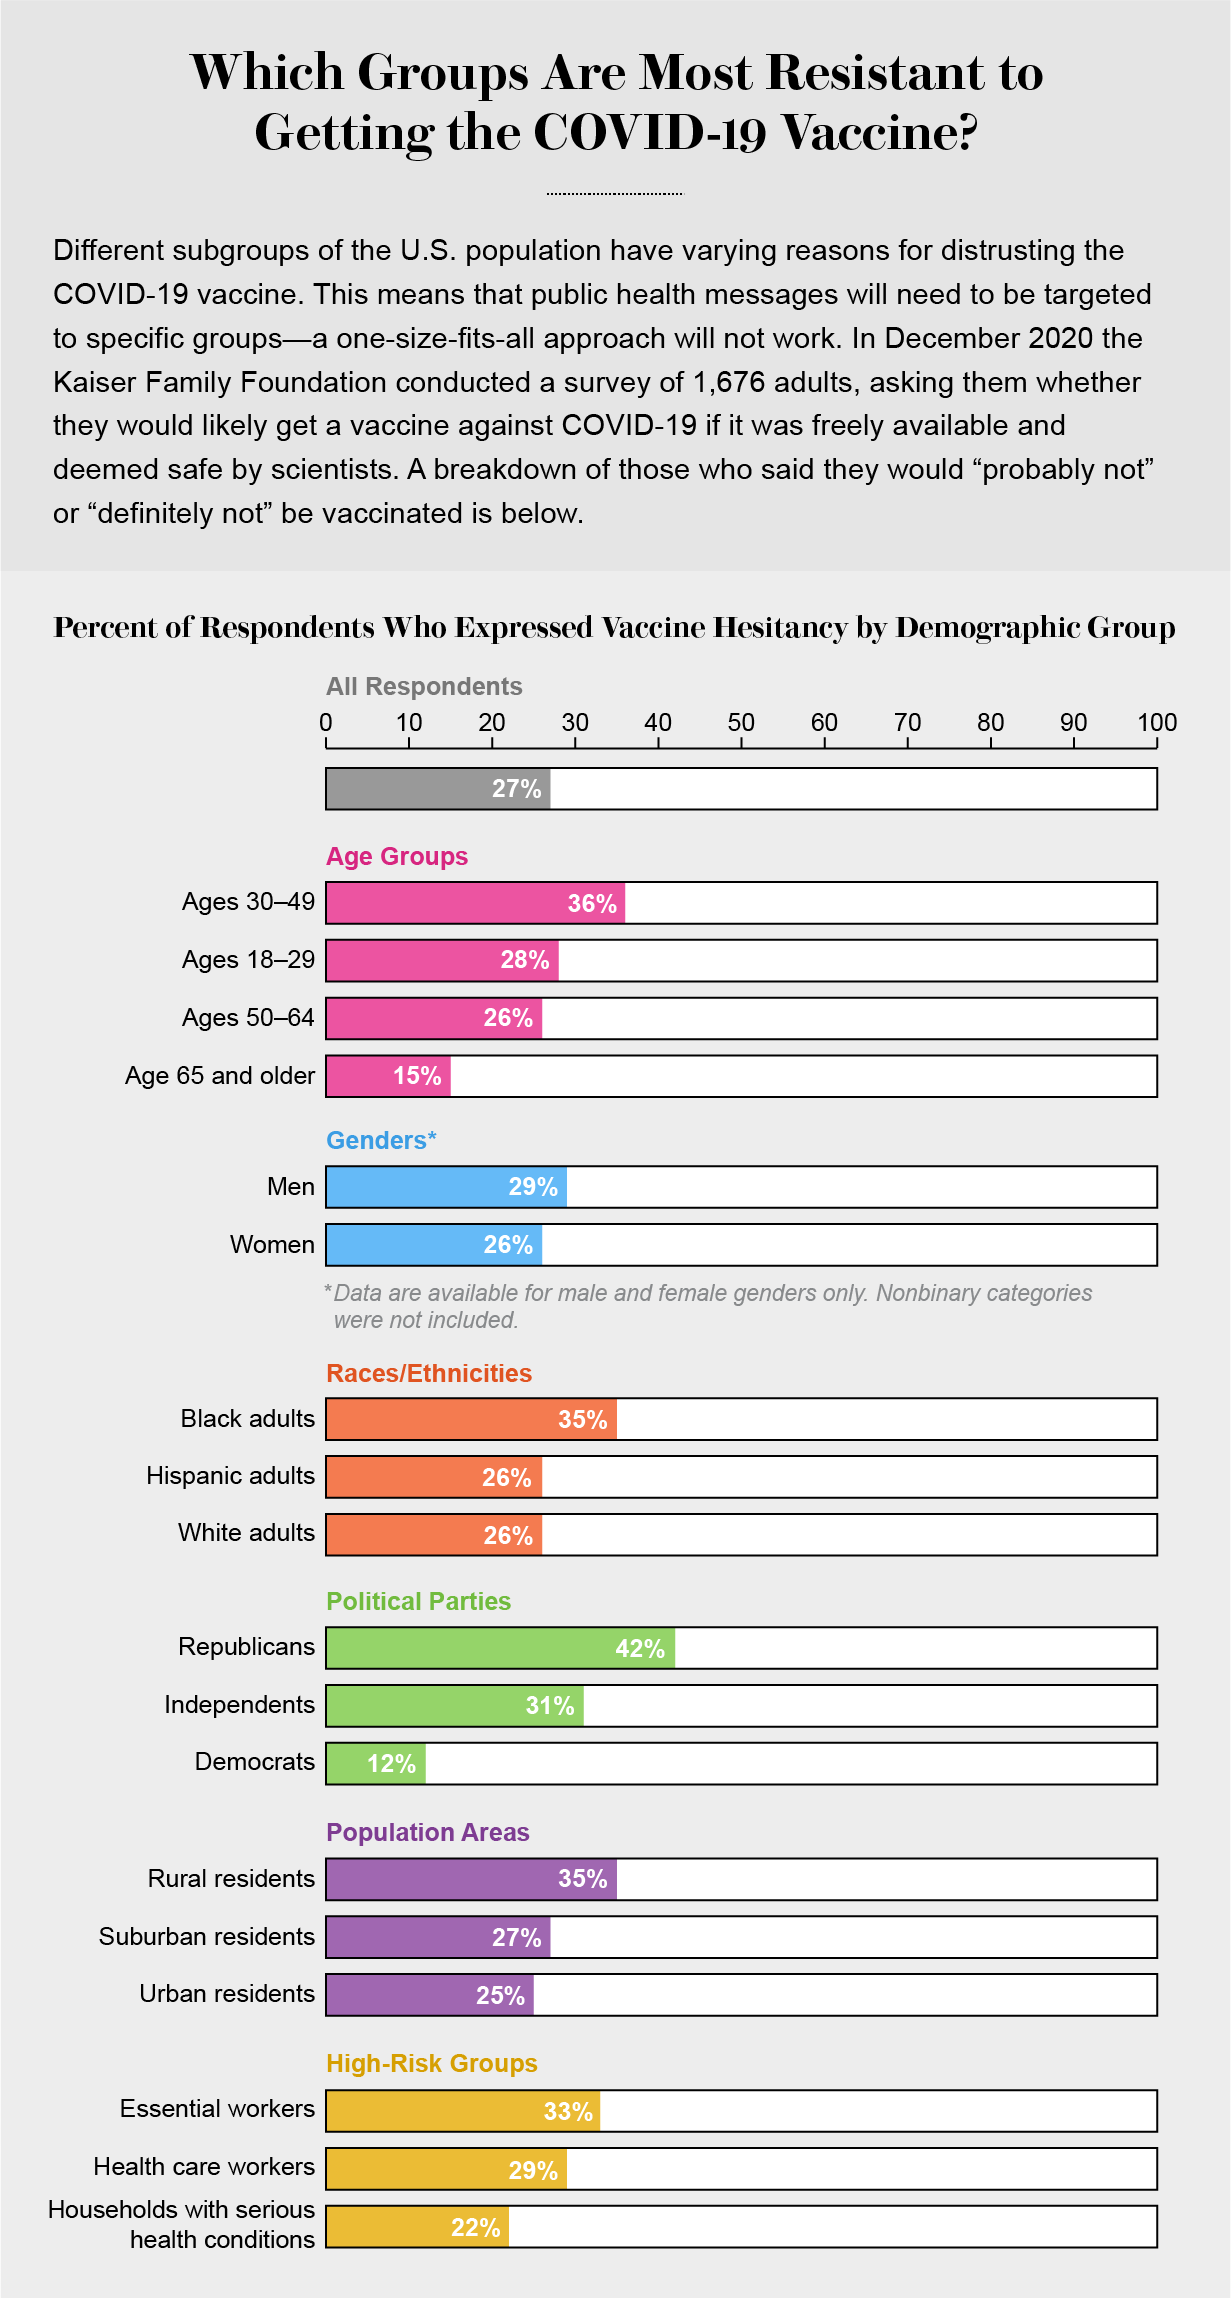 Bar graph shows percentages of survey respondents within various demographic groups who expressed COVID vaccine hesitancy